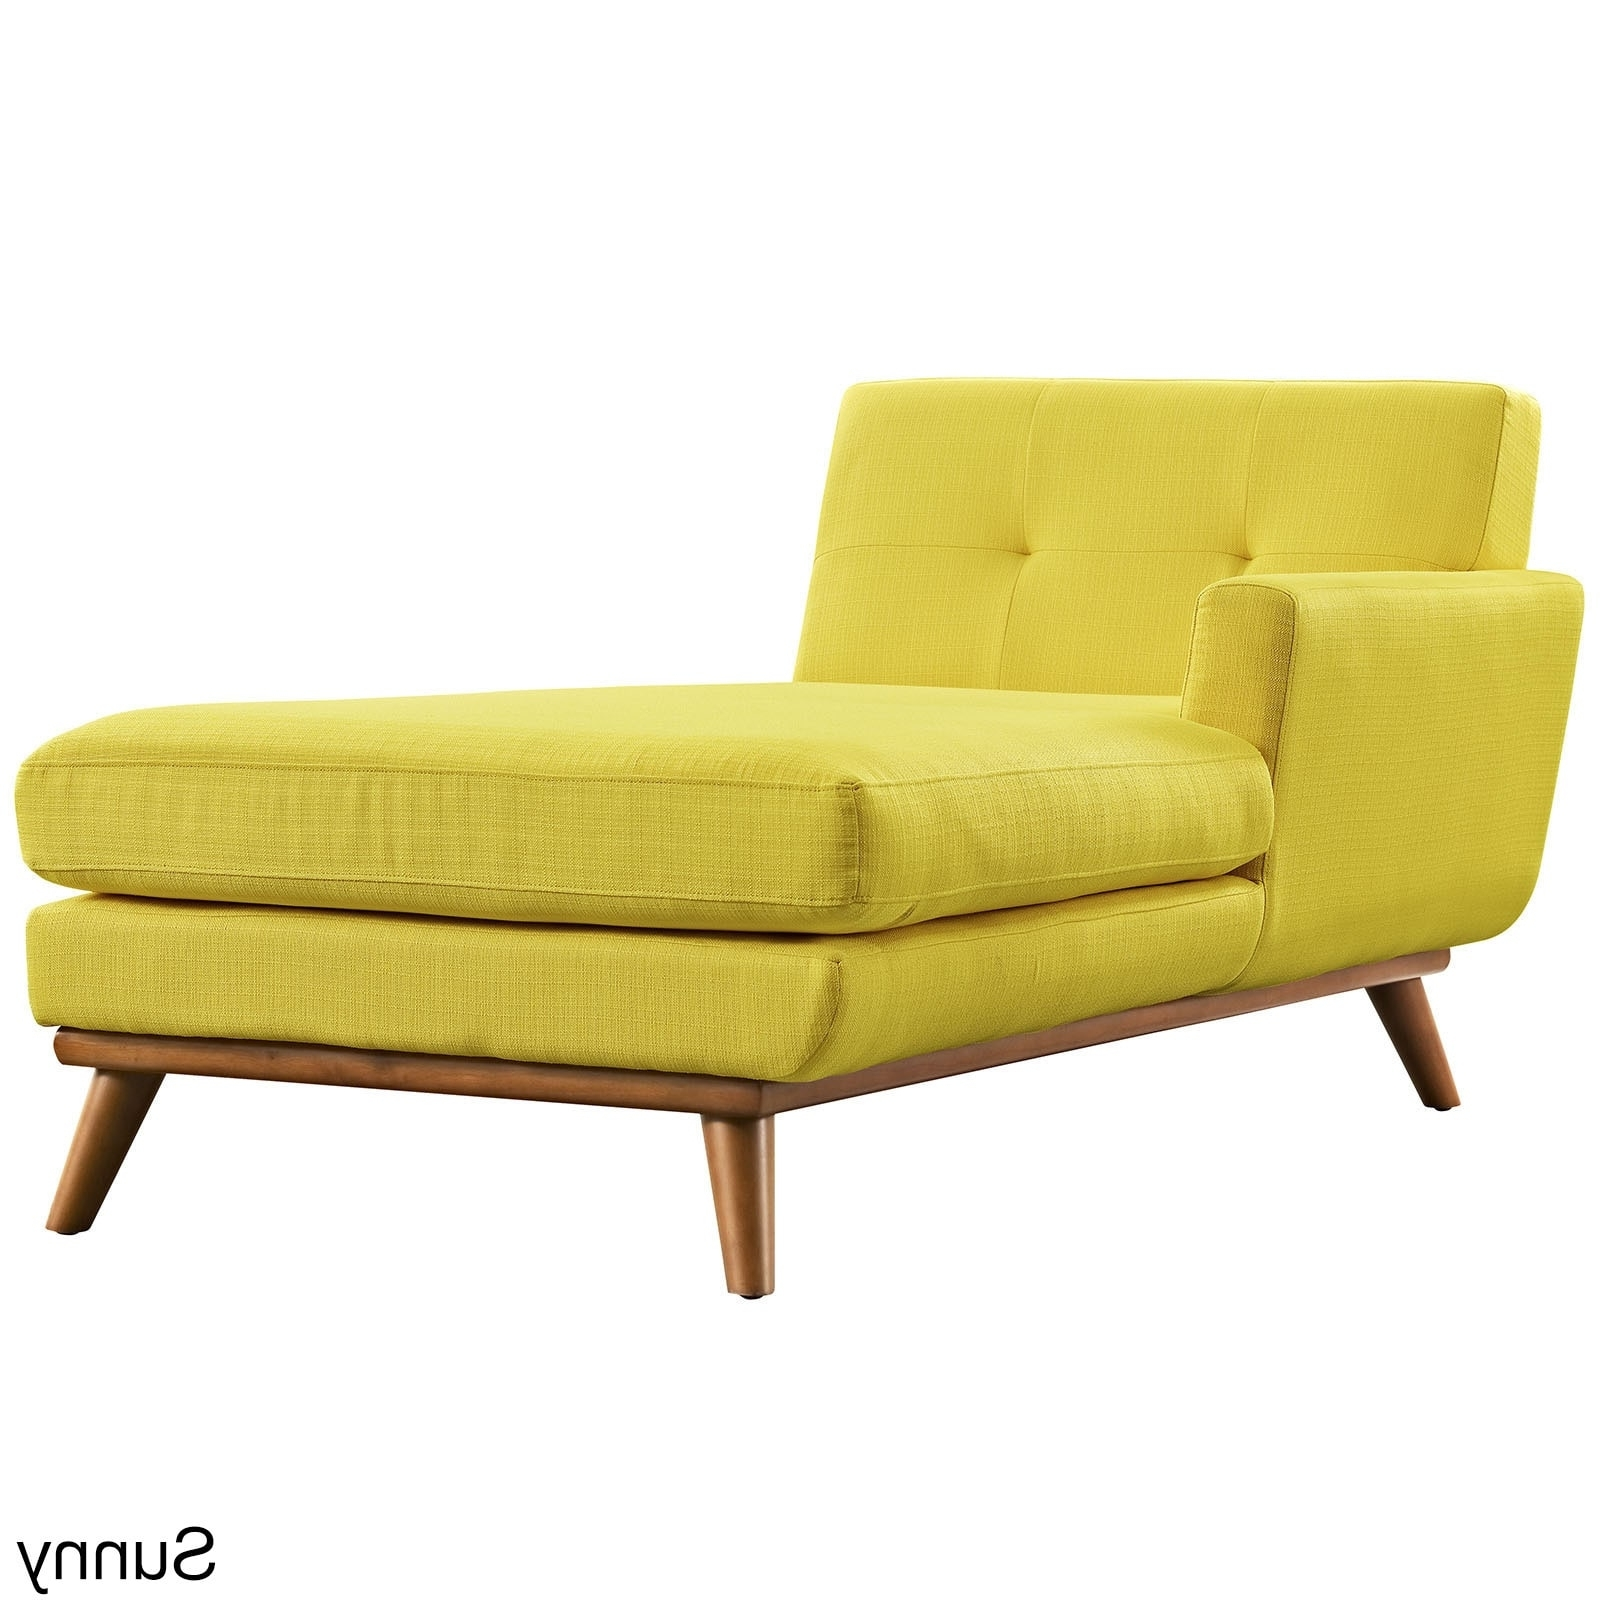 Mid Century Chaise Lounges Inside Popular Engage Left Arm Mid Century Chaise Lounge – Free Shipping Today (View 10 of 15)